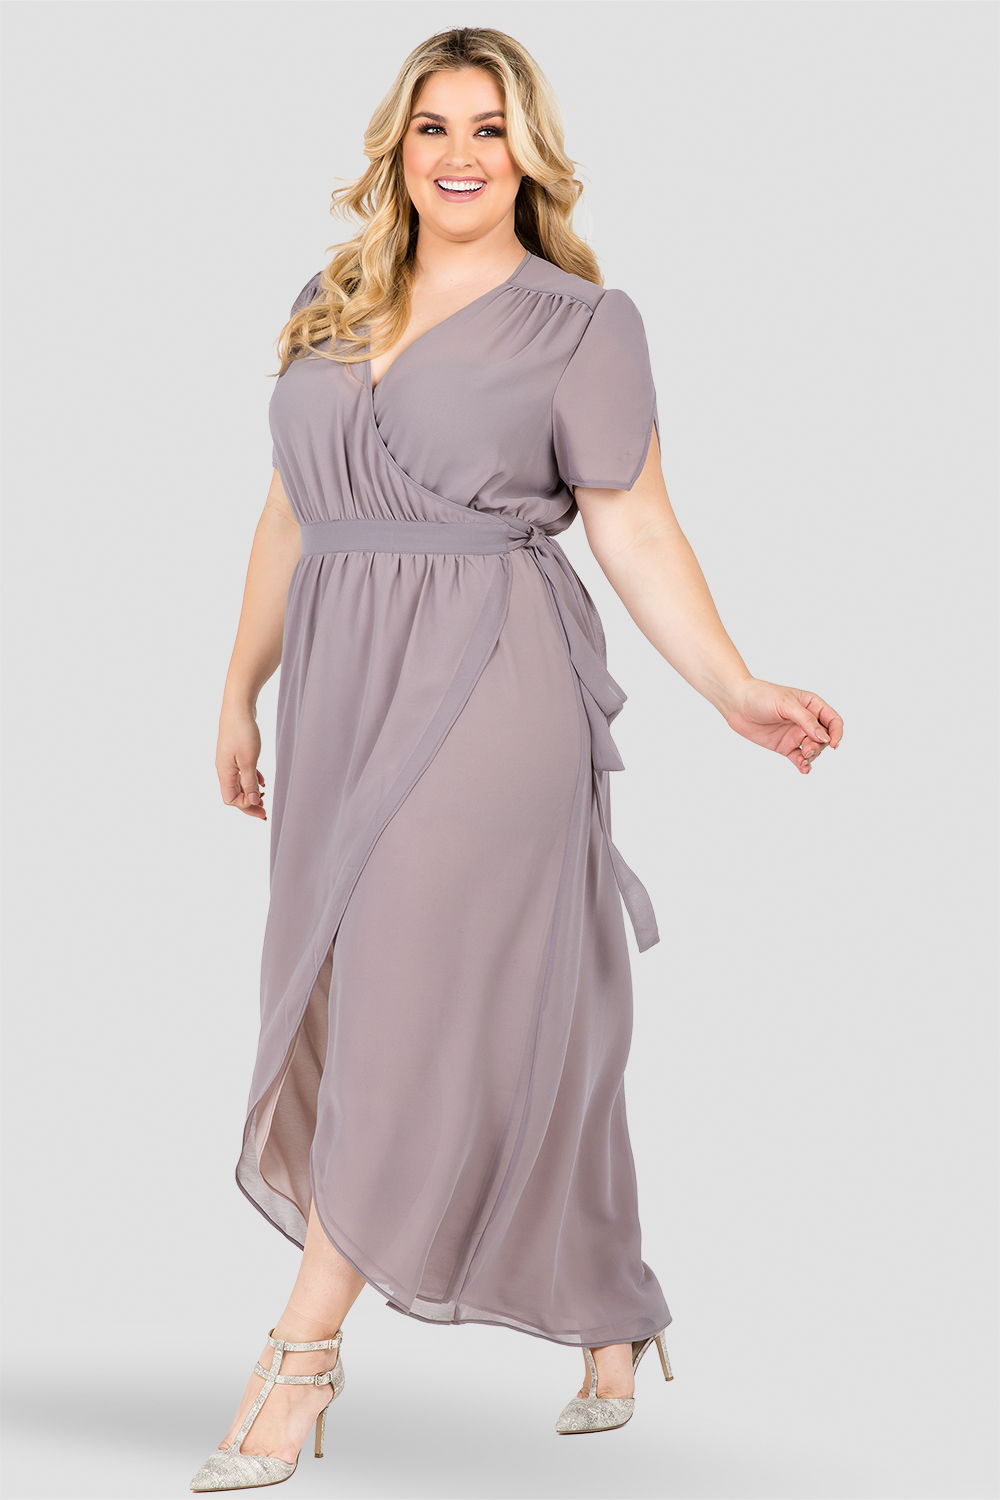 Standards & Practices Women's Plus Size Short Sleeve V-Neck Maxi Dress